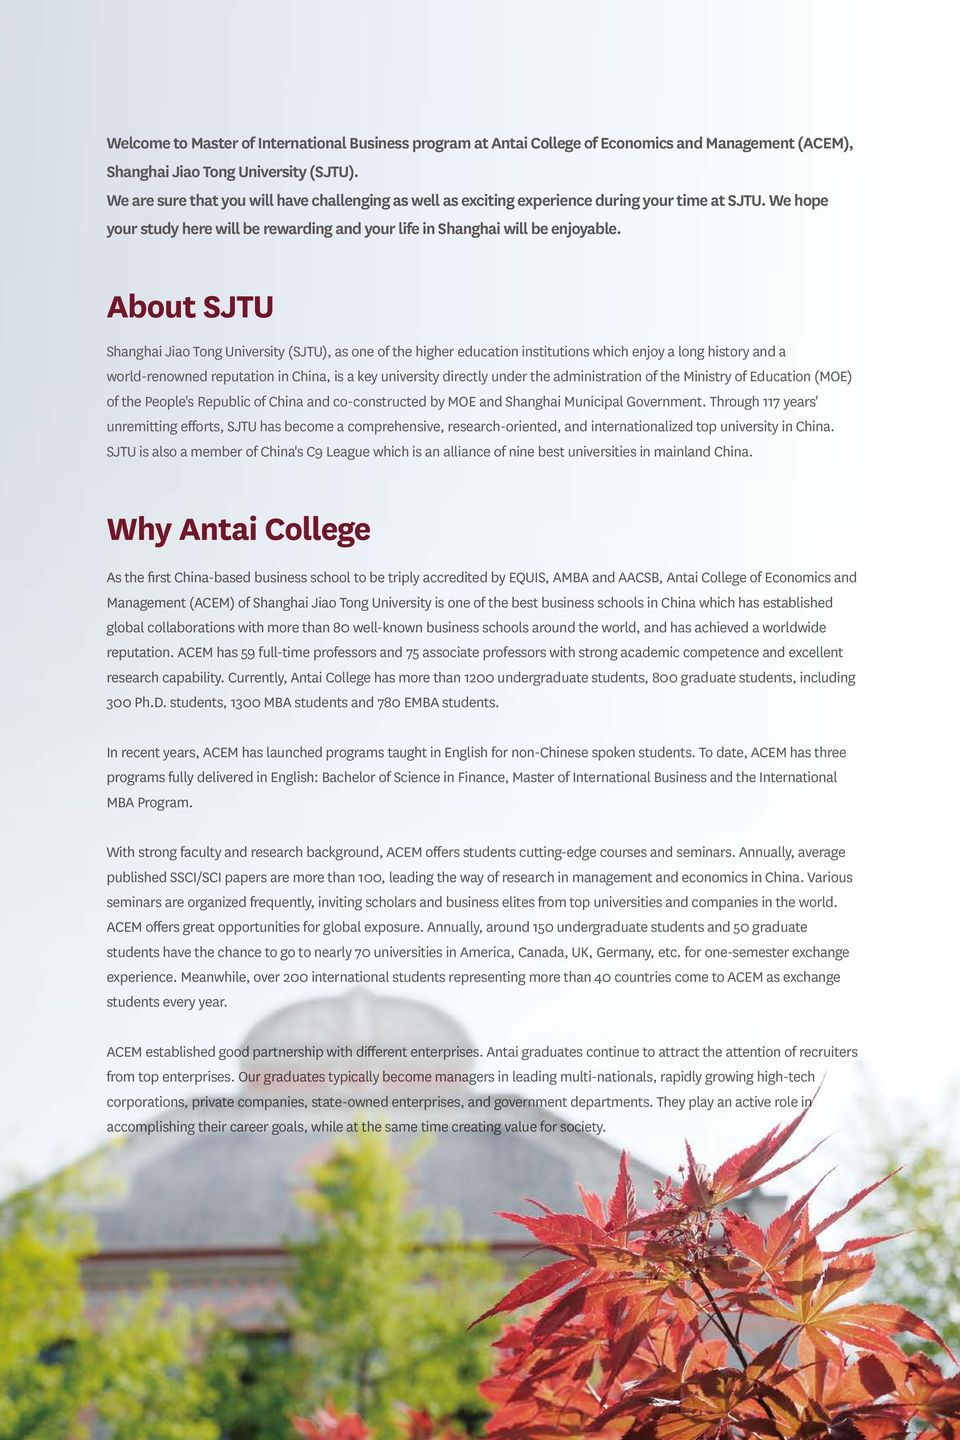 About SJTU Shanghai Jiao Tong University (SJTU), as one of the higher education institutions which enjoy a long history and a world-renowned reputation in China, is a key university directly under